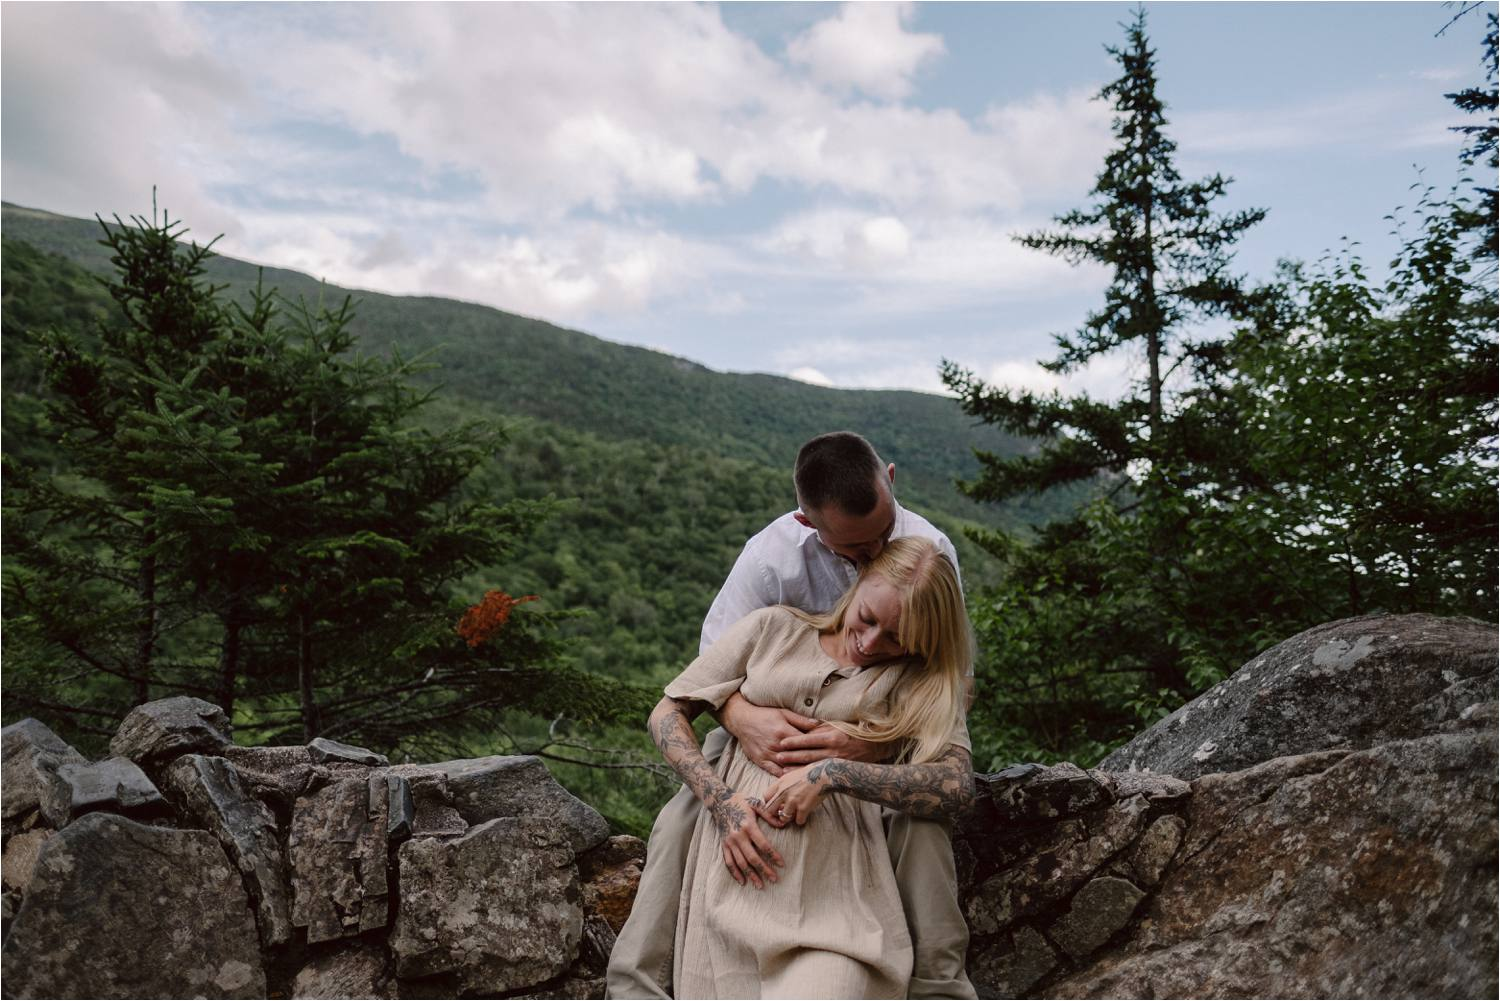 New Hampshire White Mountains Pregnancy Announcement with Tattooed Couple - Jemima